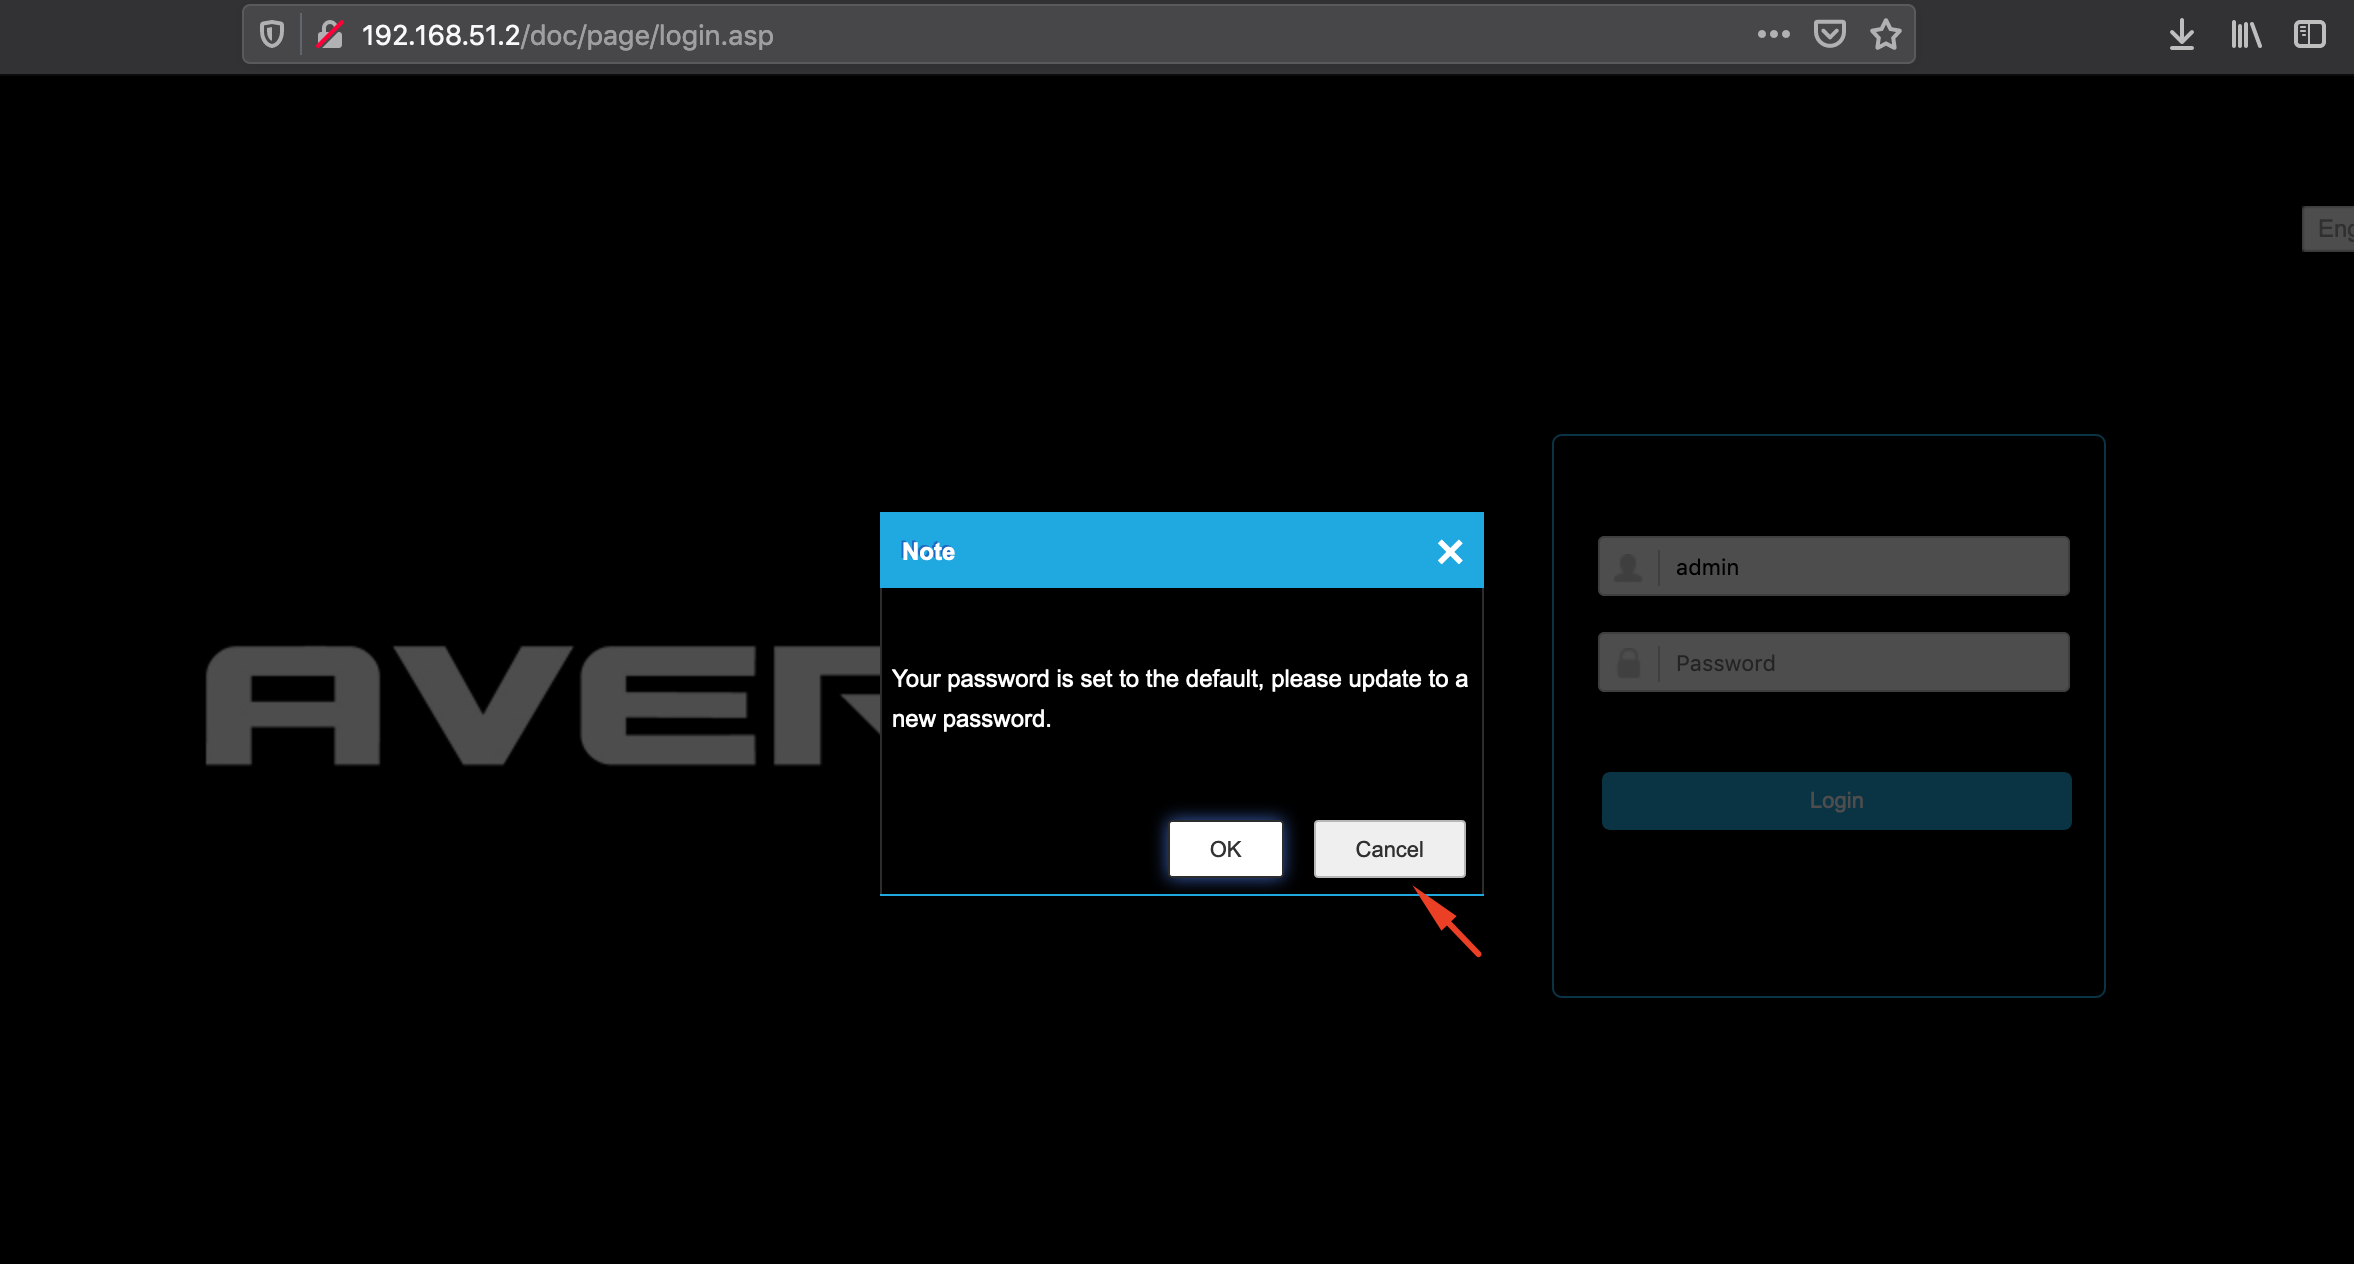 AvertX IP cameras show a pop-up window suggesting the user change the default password for the admin account, but the suggestion can be ignored.